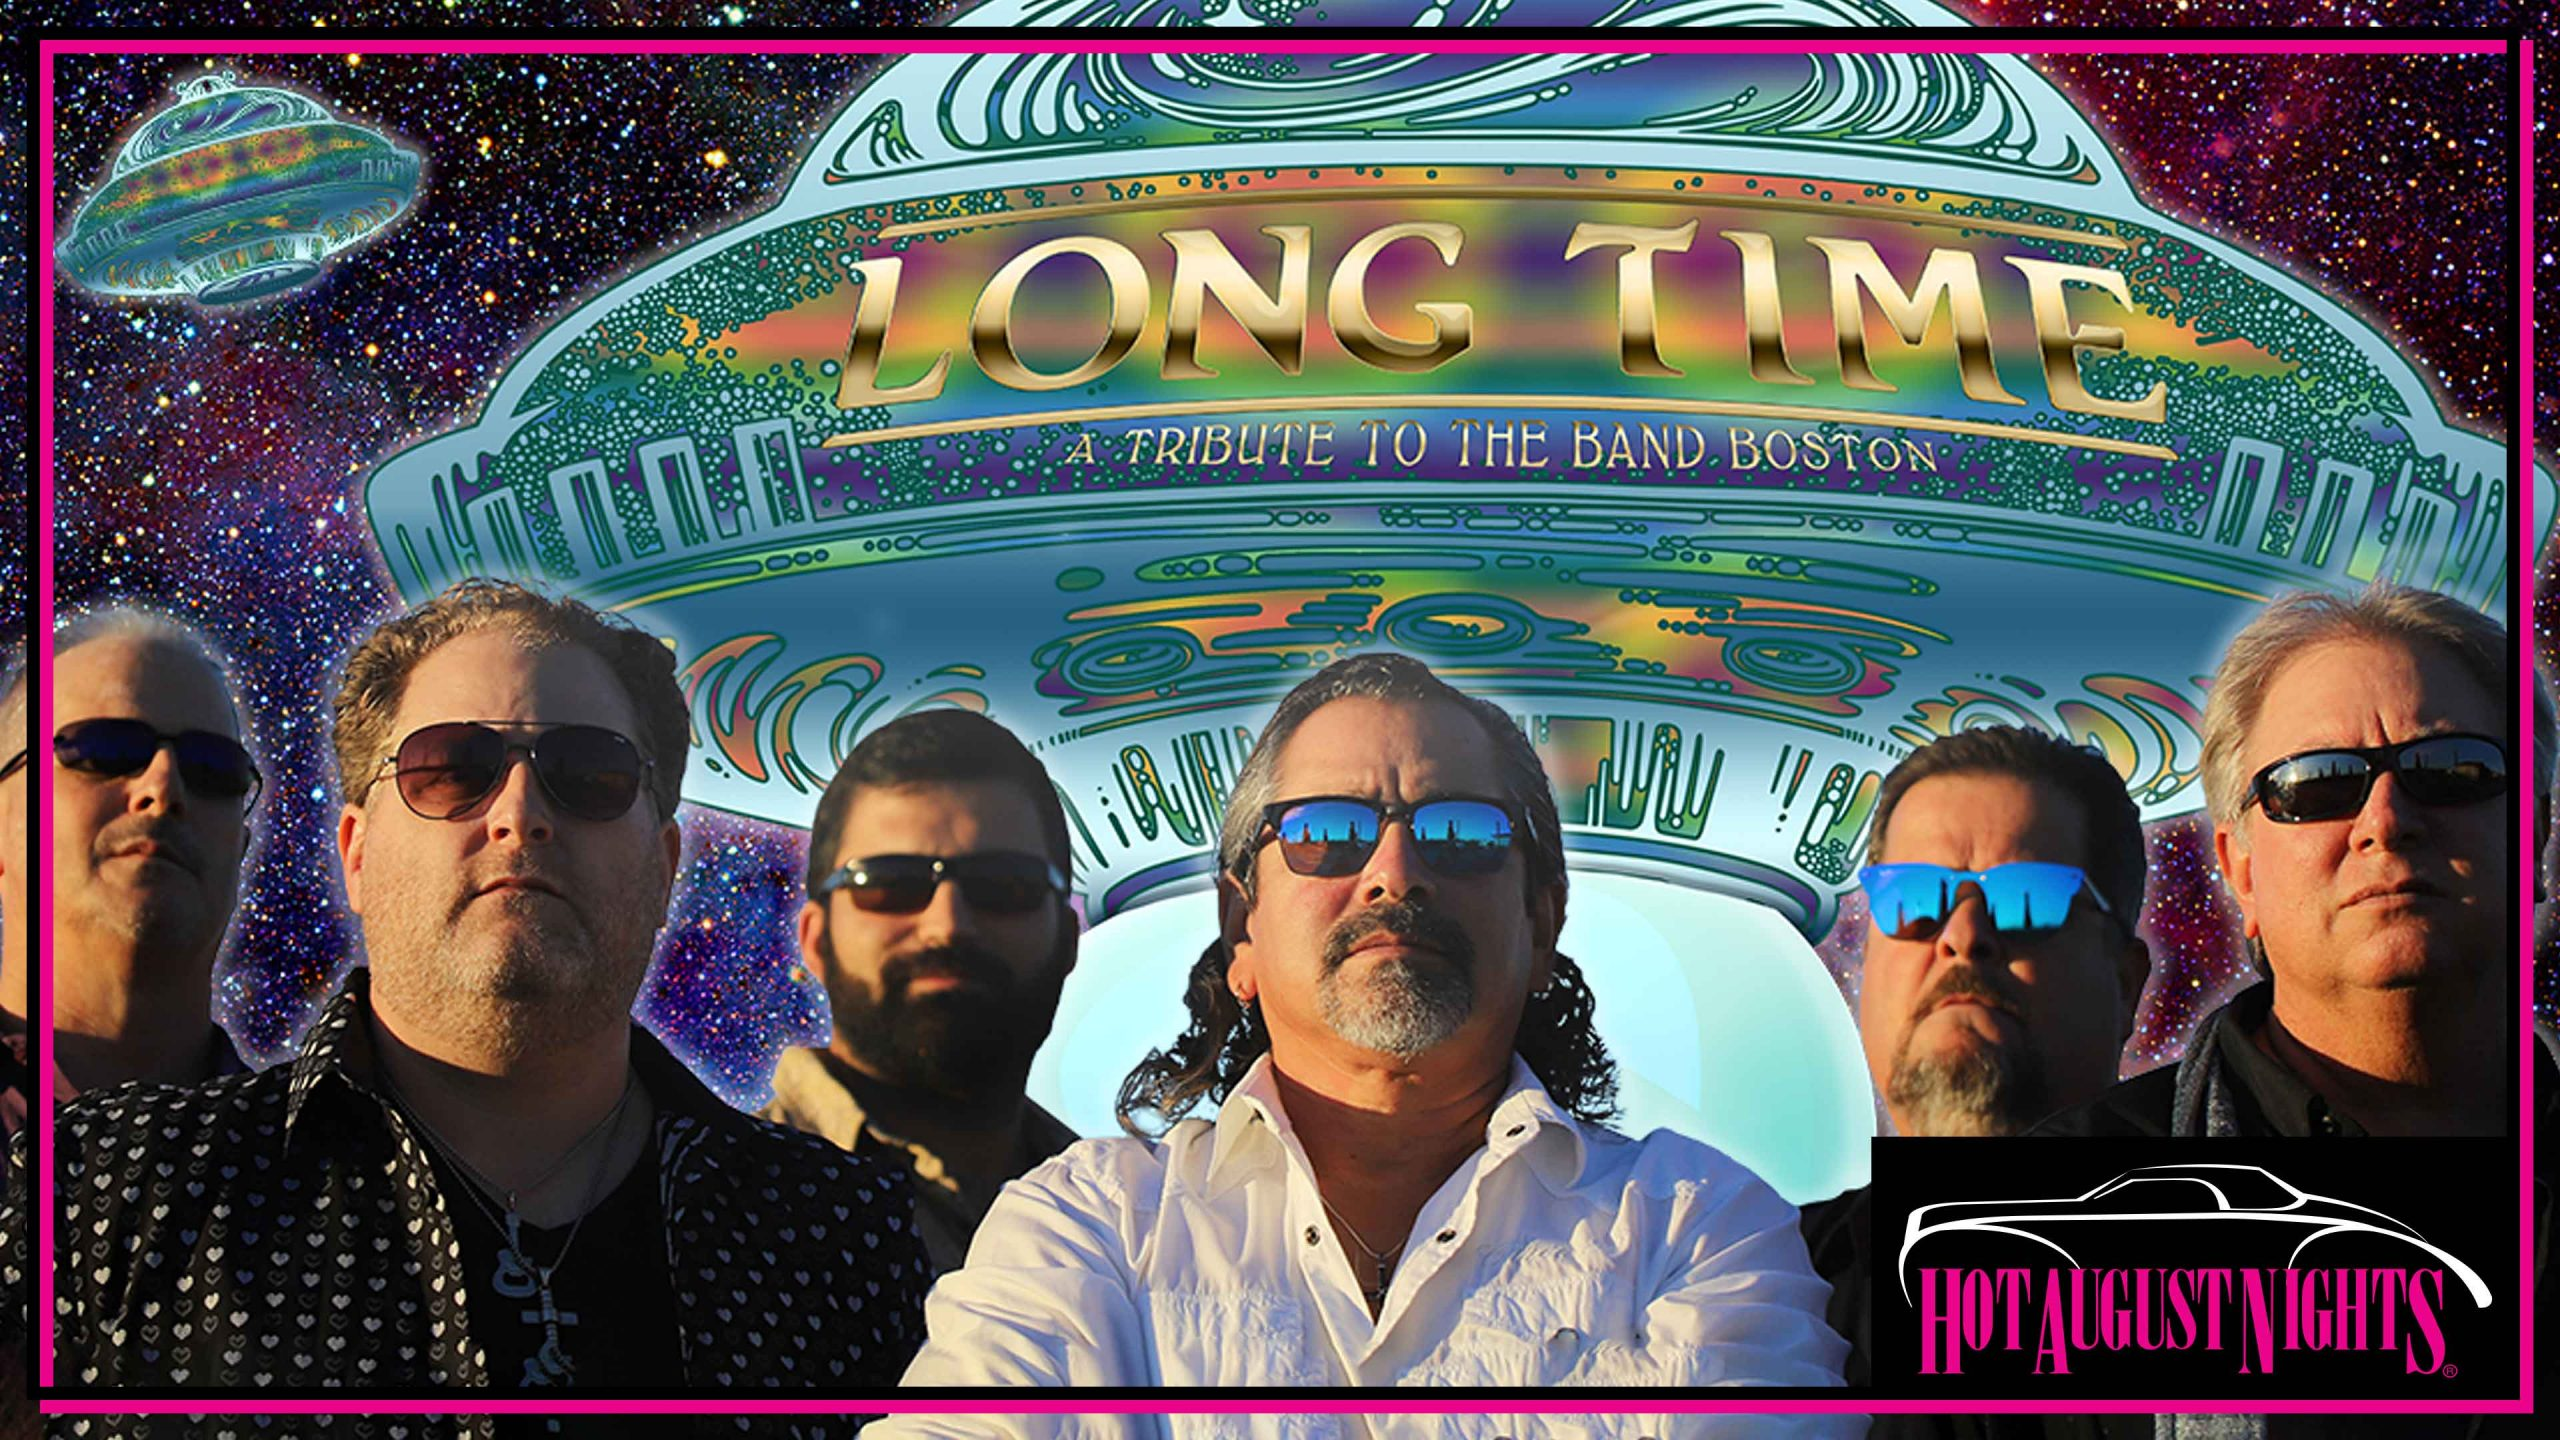 Long Time: A Tribute to the Band Boston